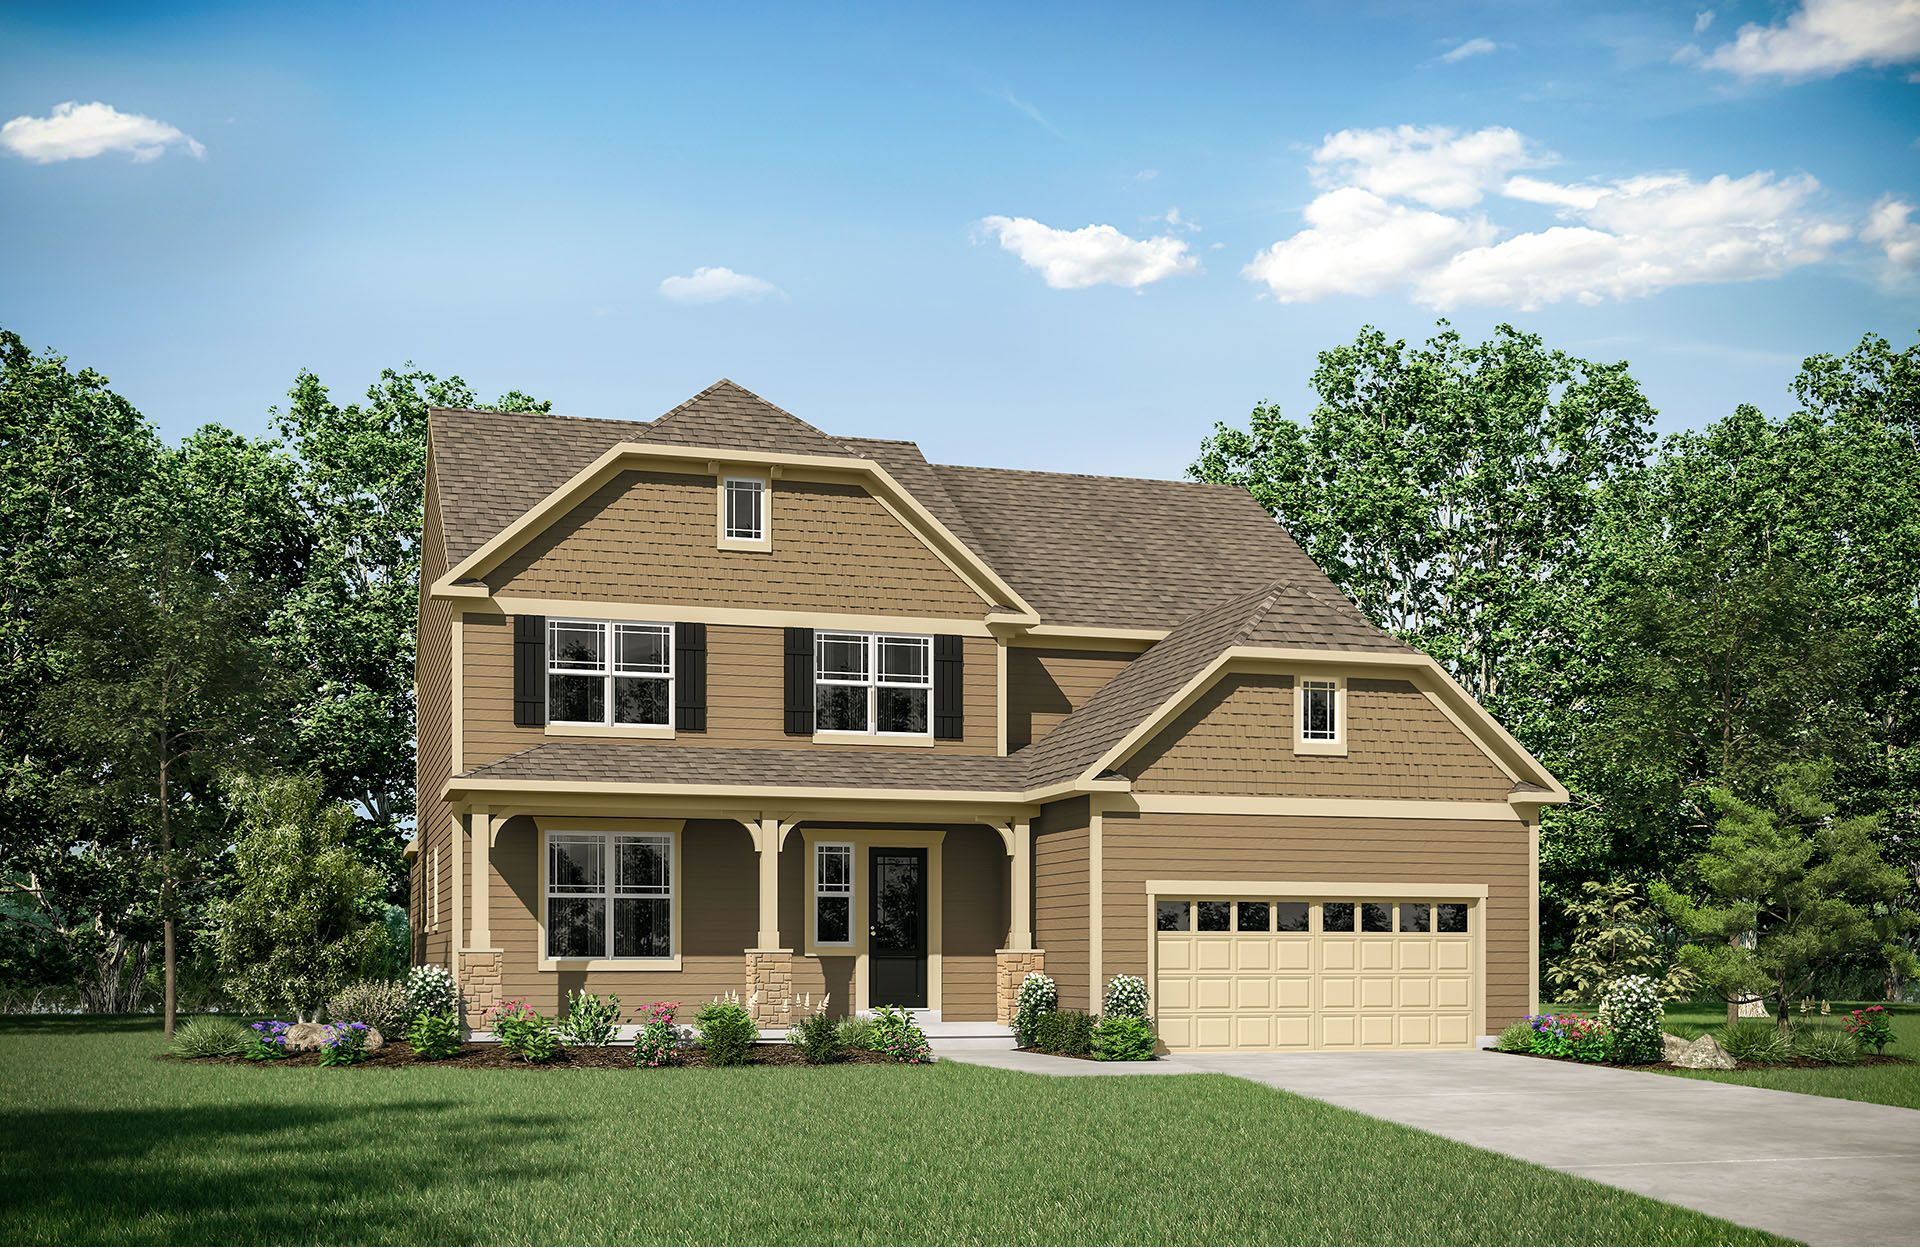 Rowan - The Preserve at Smith Run: Fredericksburg, VA - Drees Homes